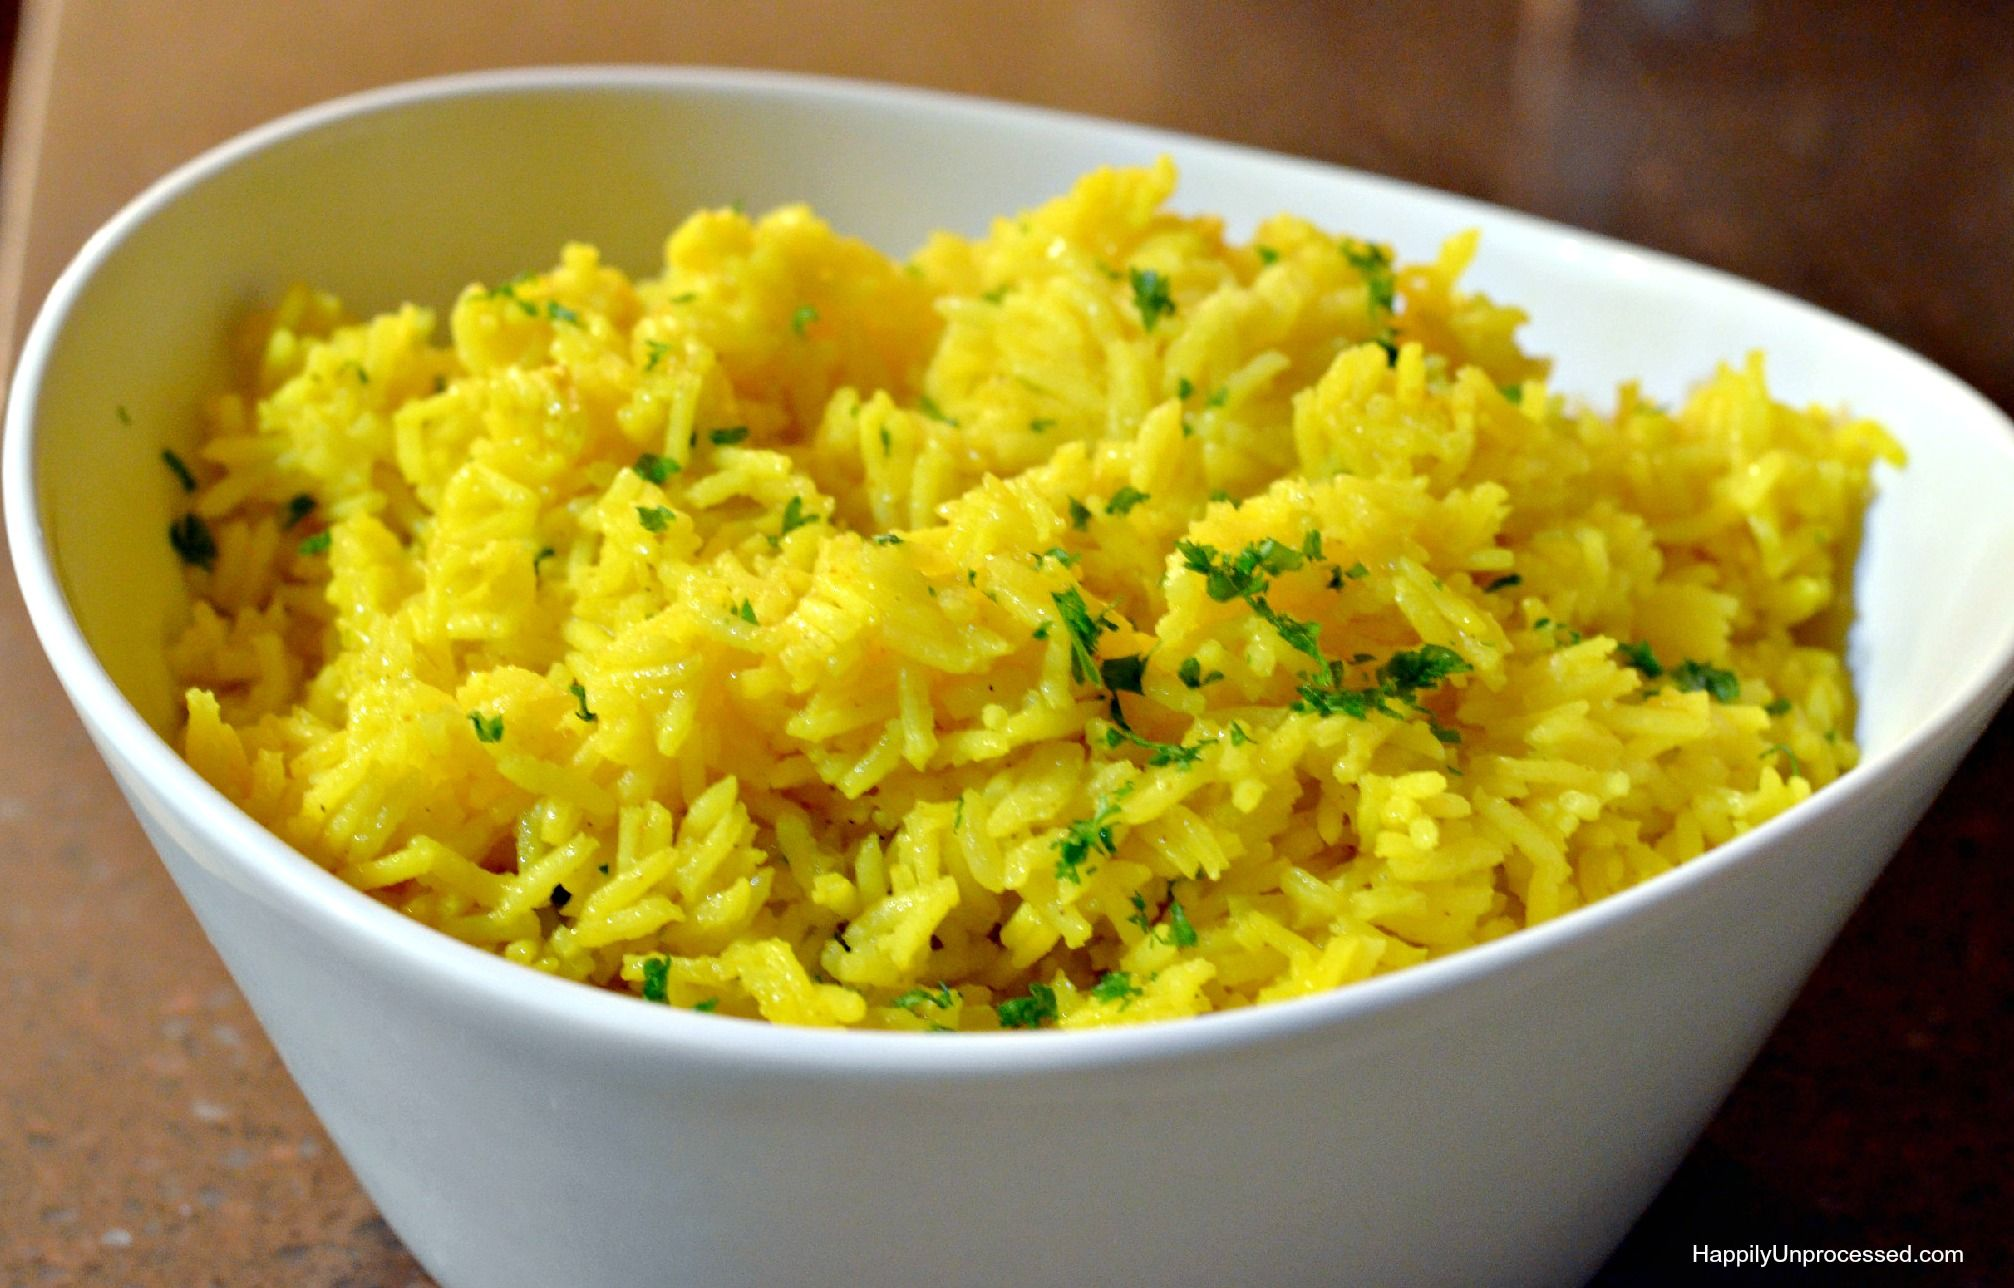 This Classic Yellow Indian Rice Is Made Using One Of The Most Health Beneficial Spices Ever